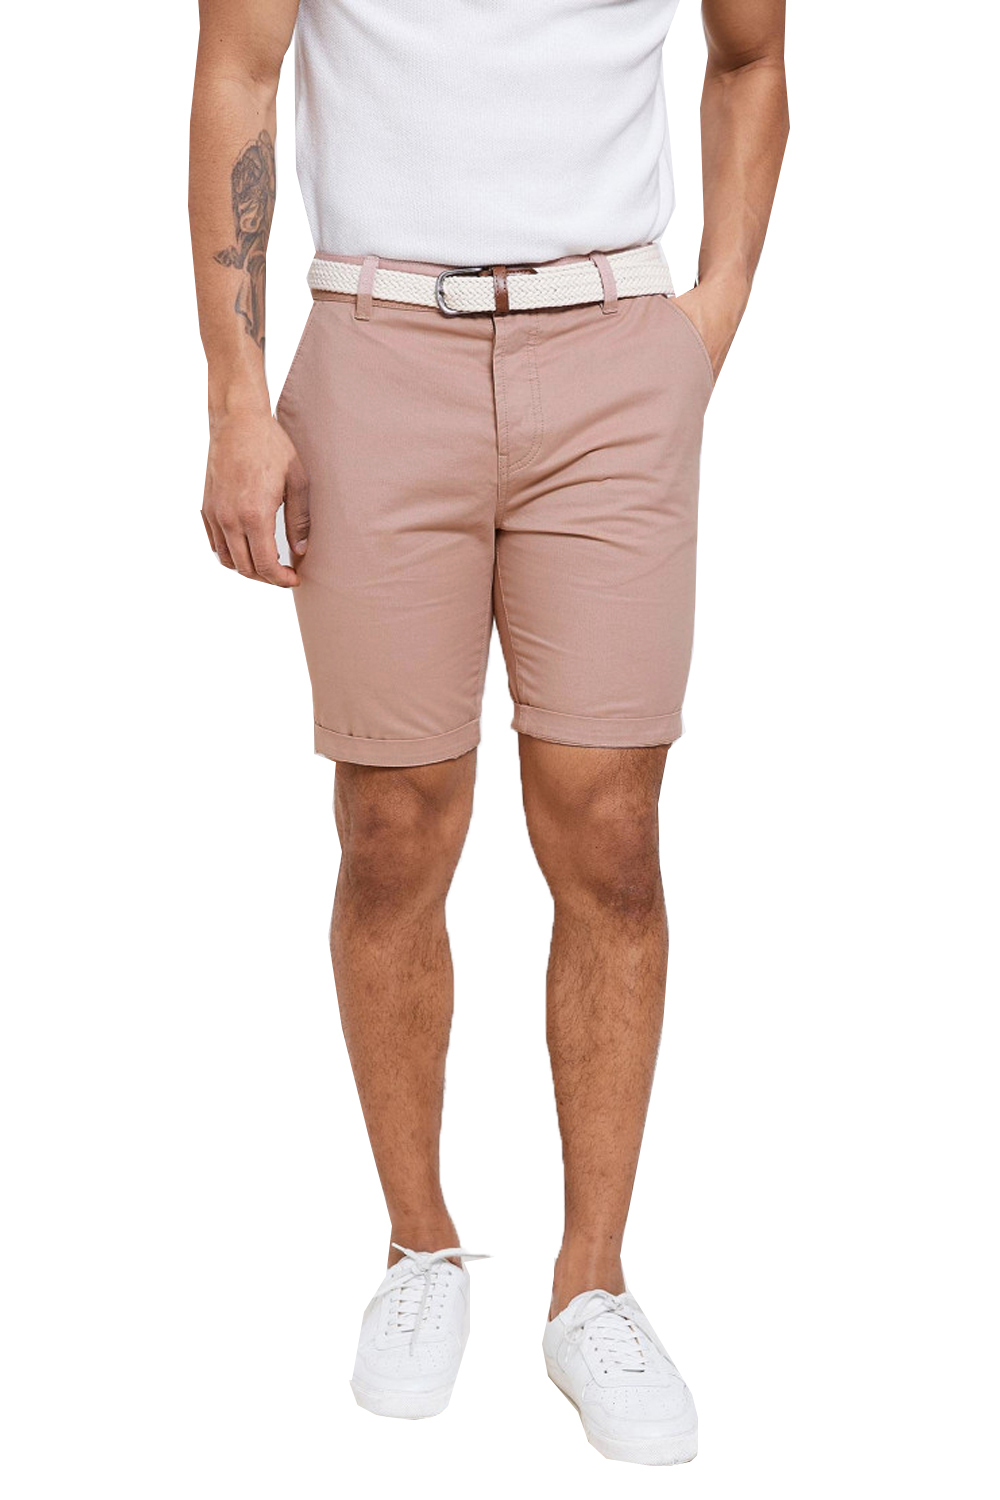 Threadbare-Mens-Slim-Fit-Belted-Chino-Shorts-Summer-Casual-Cotton-Smart-Bottoms thumbnail 15